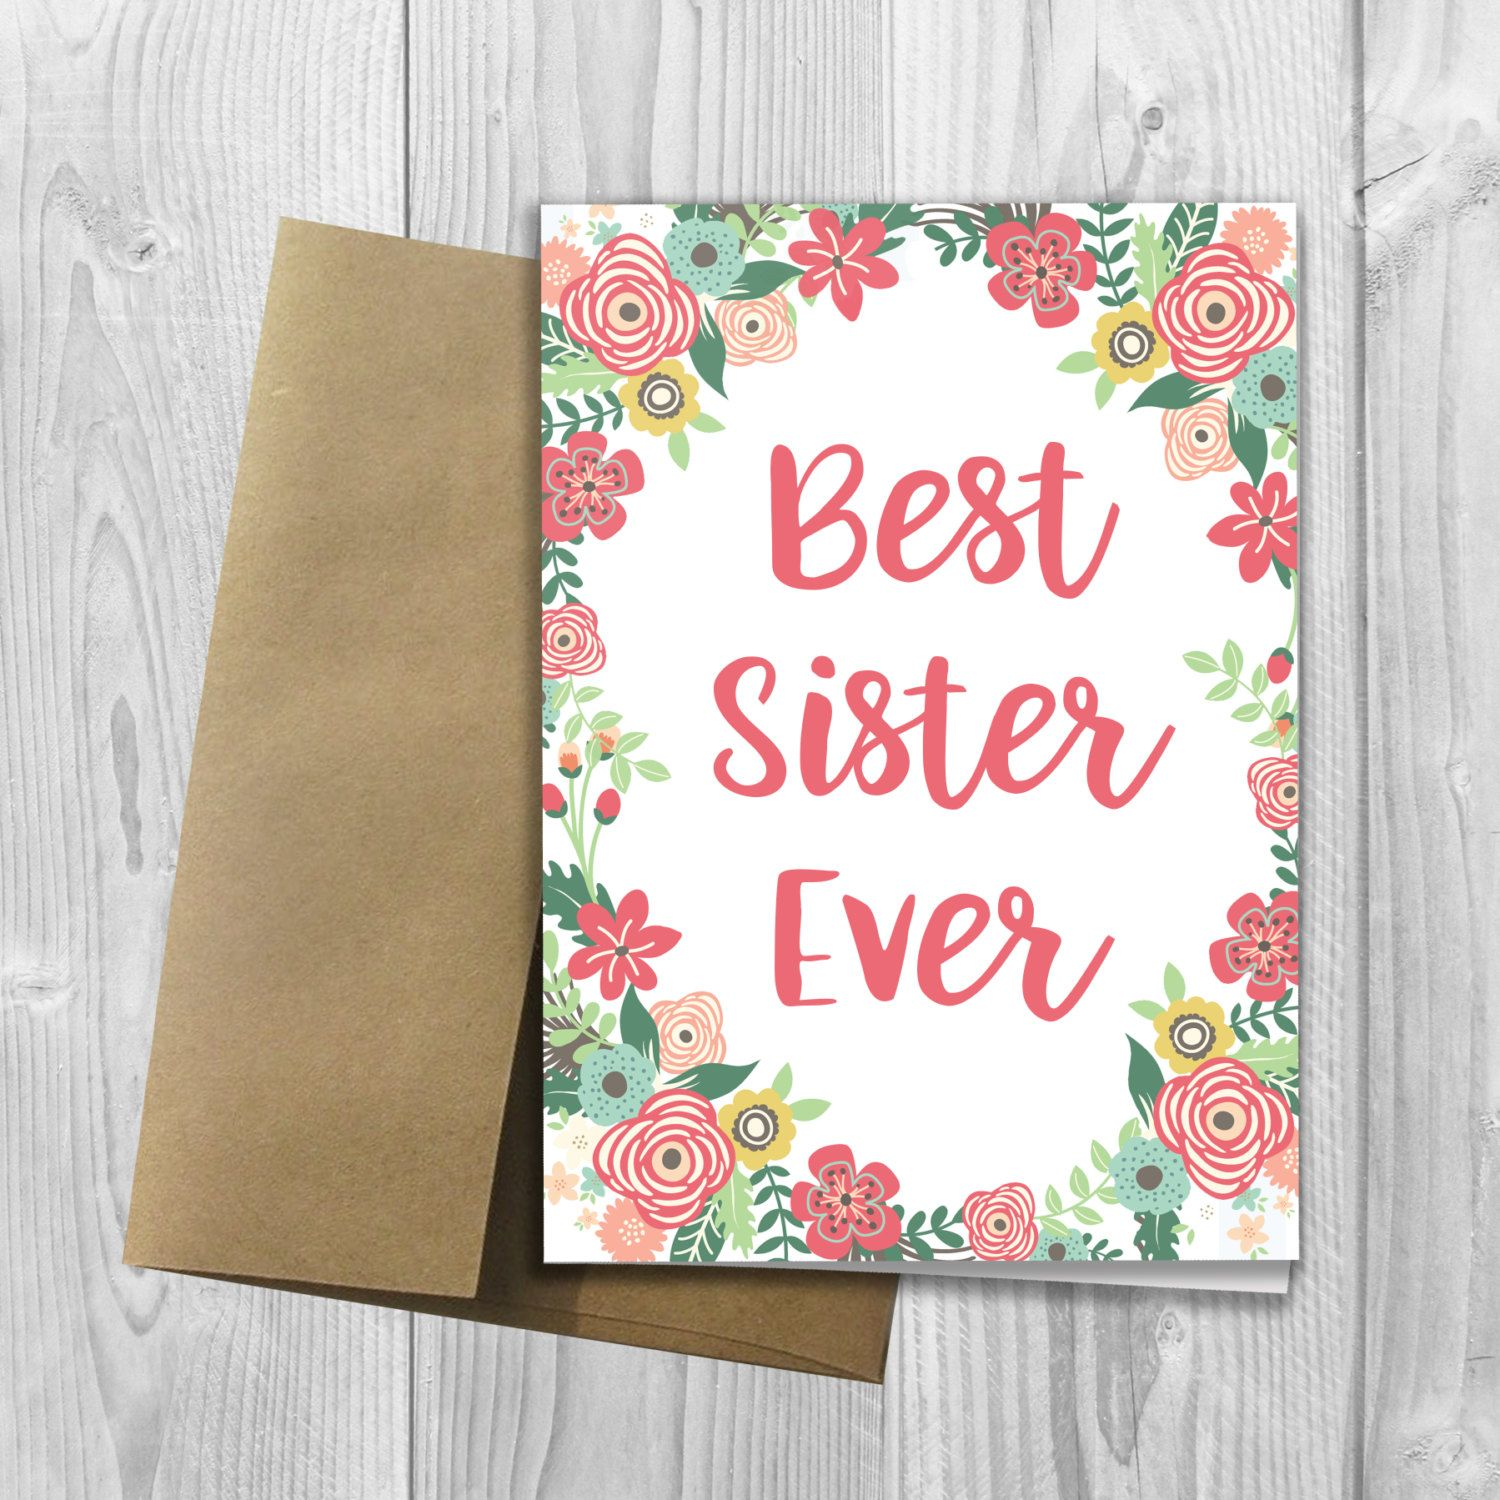 Best sister ever floral watercolor mothers day 5x7 printed best sister ever floral watercolor mothers day 5x7 printed greeting card flowers notecard kristyandbryce Images